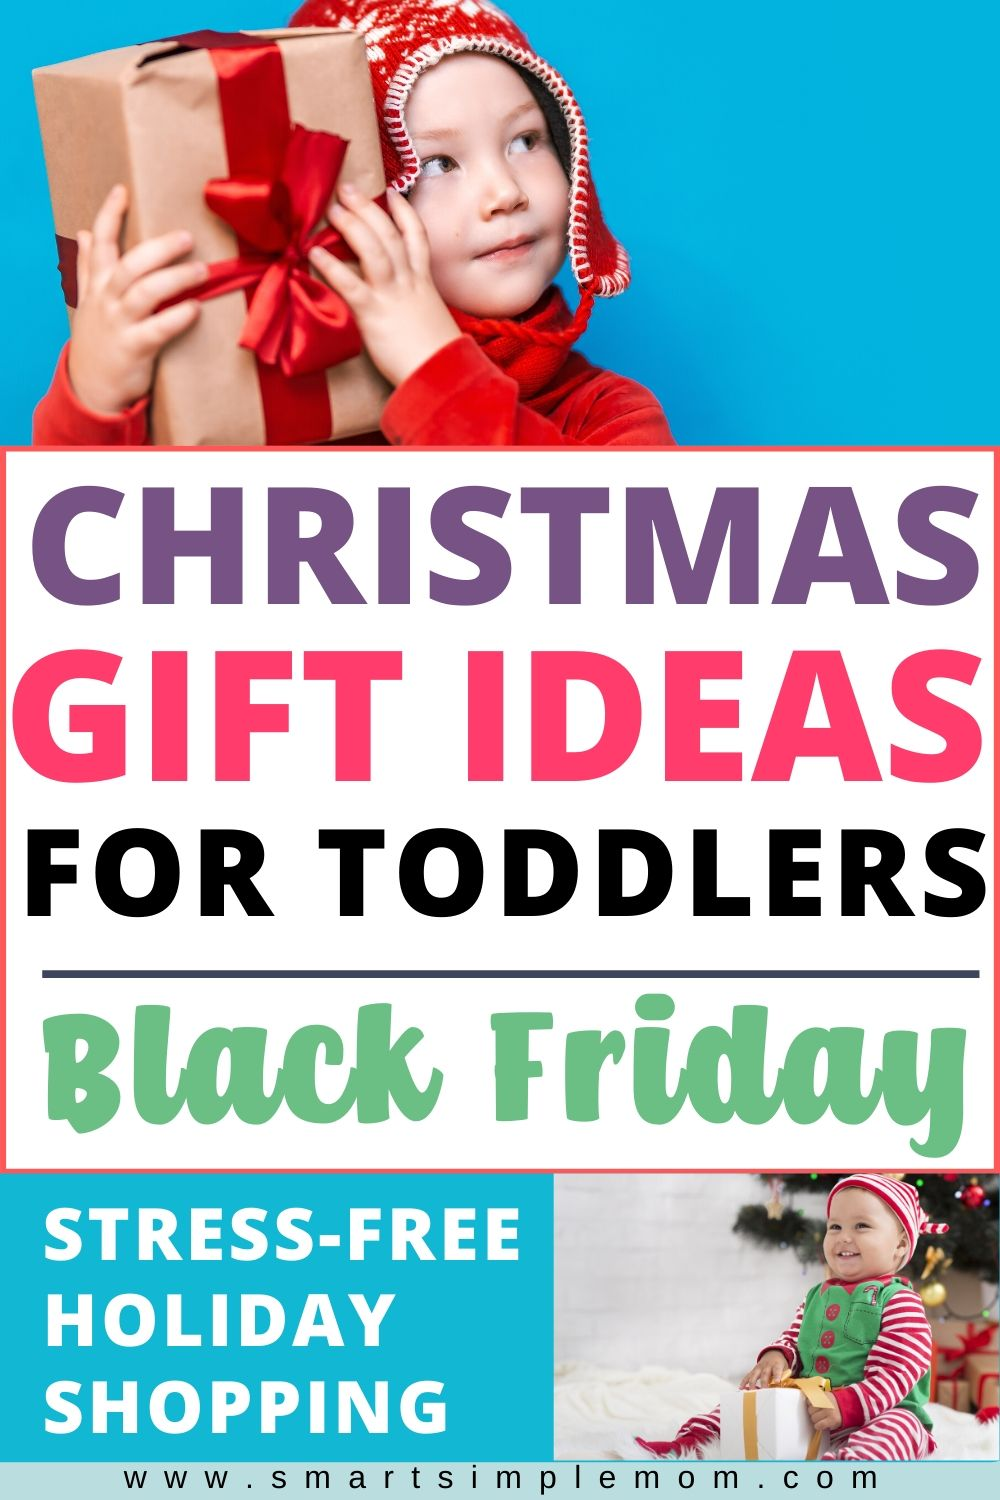 Let me help you ROCK Christmas shopping this year with my best tips, strategies, and my favorite Christmas Gift Ideas for TODDLERS on Black Friday! #blackfriday #christmasgiftideas #christmasgiftideastoddlers